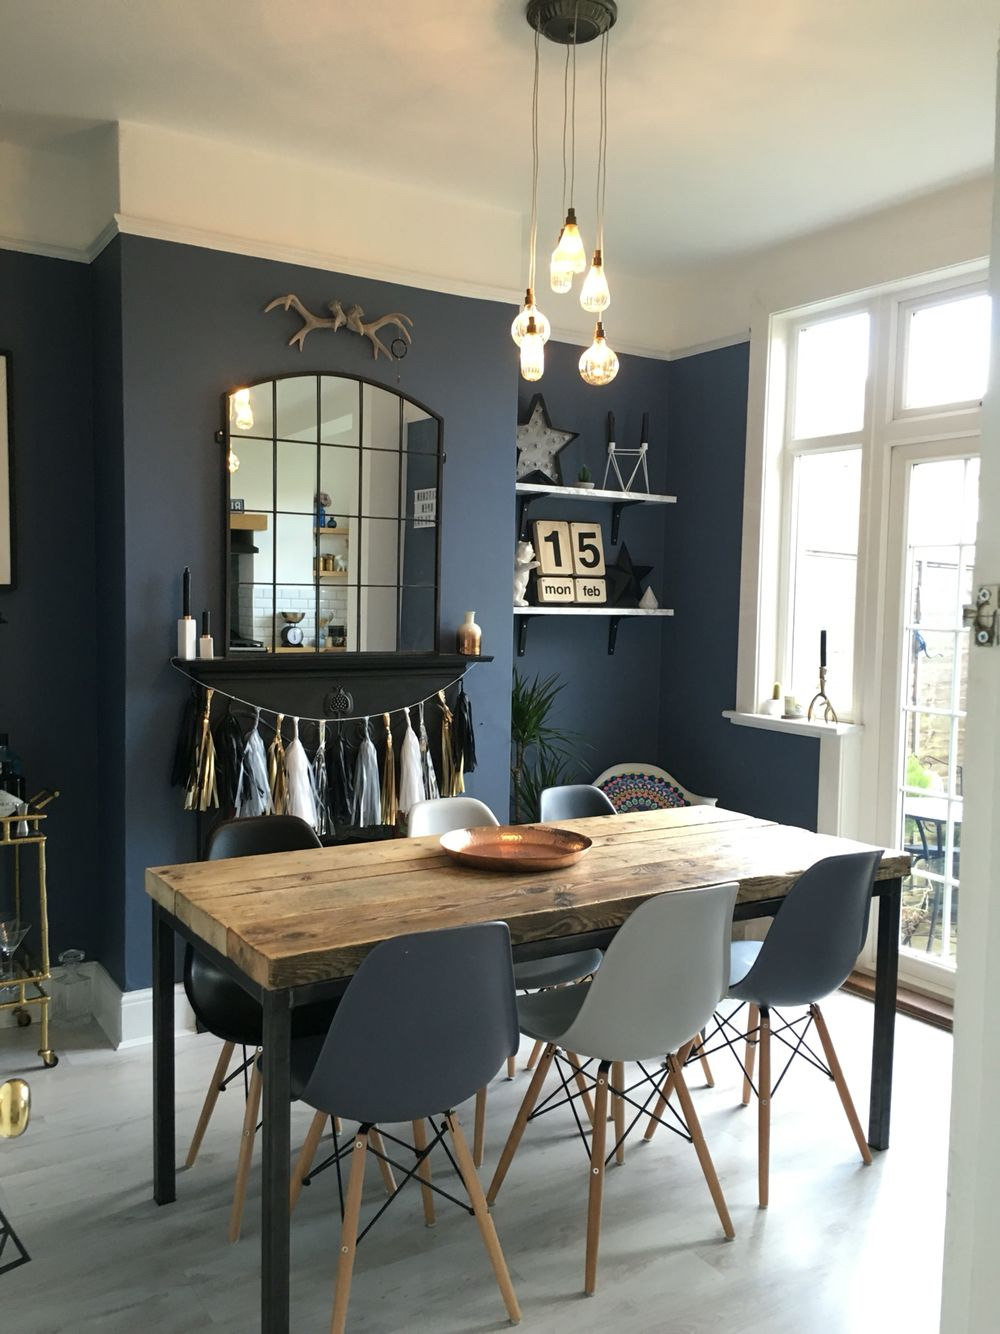 how to match dining chairs with a designer table | ash, room